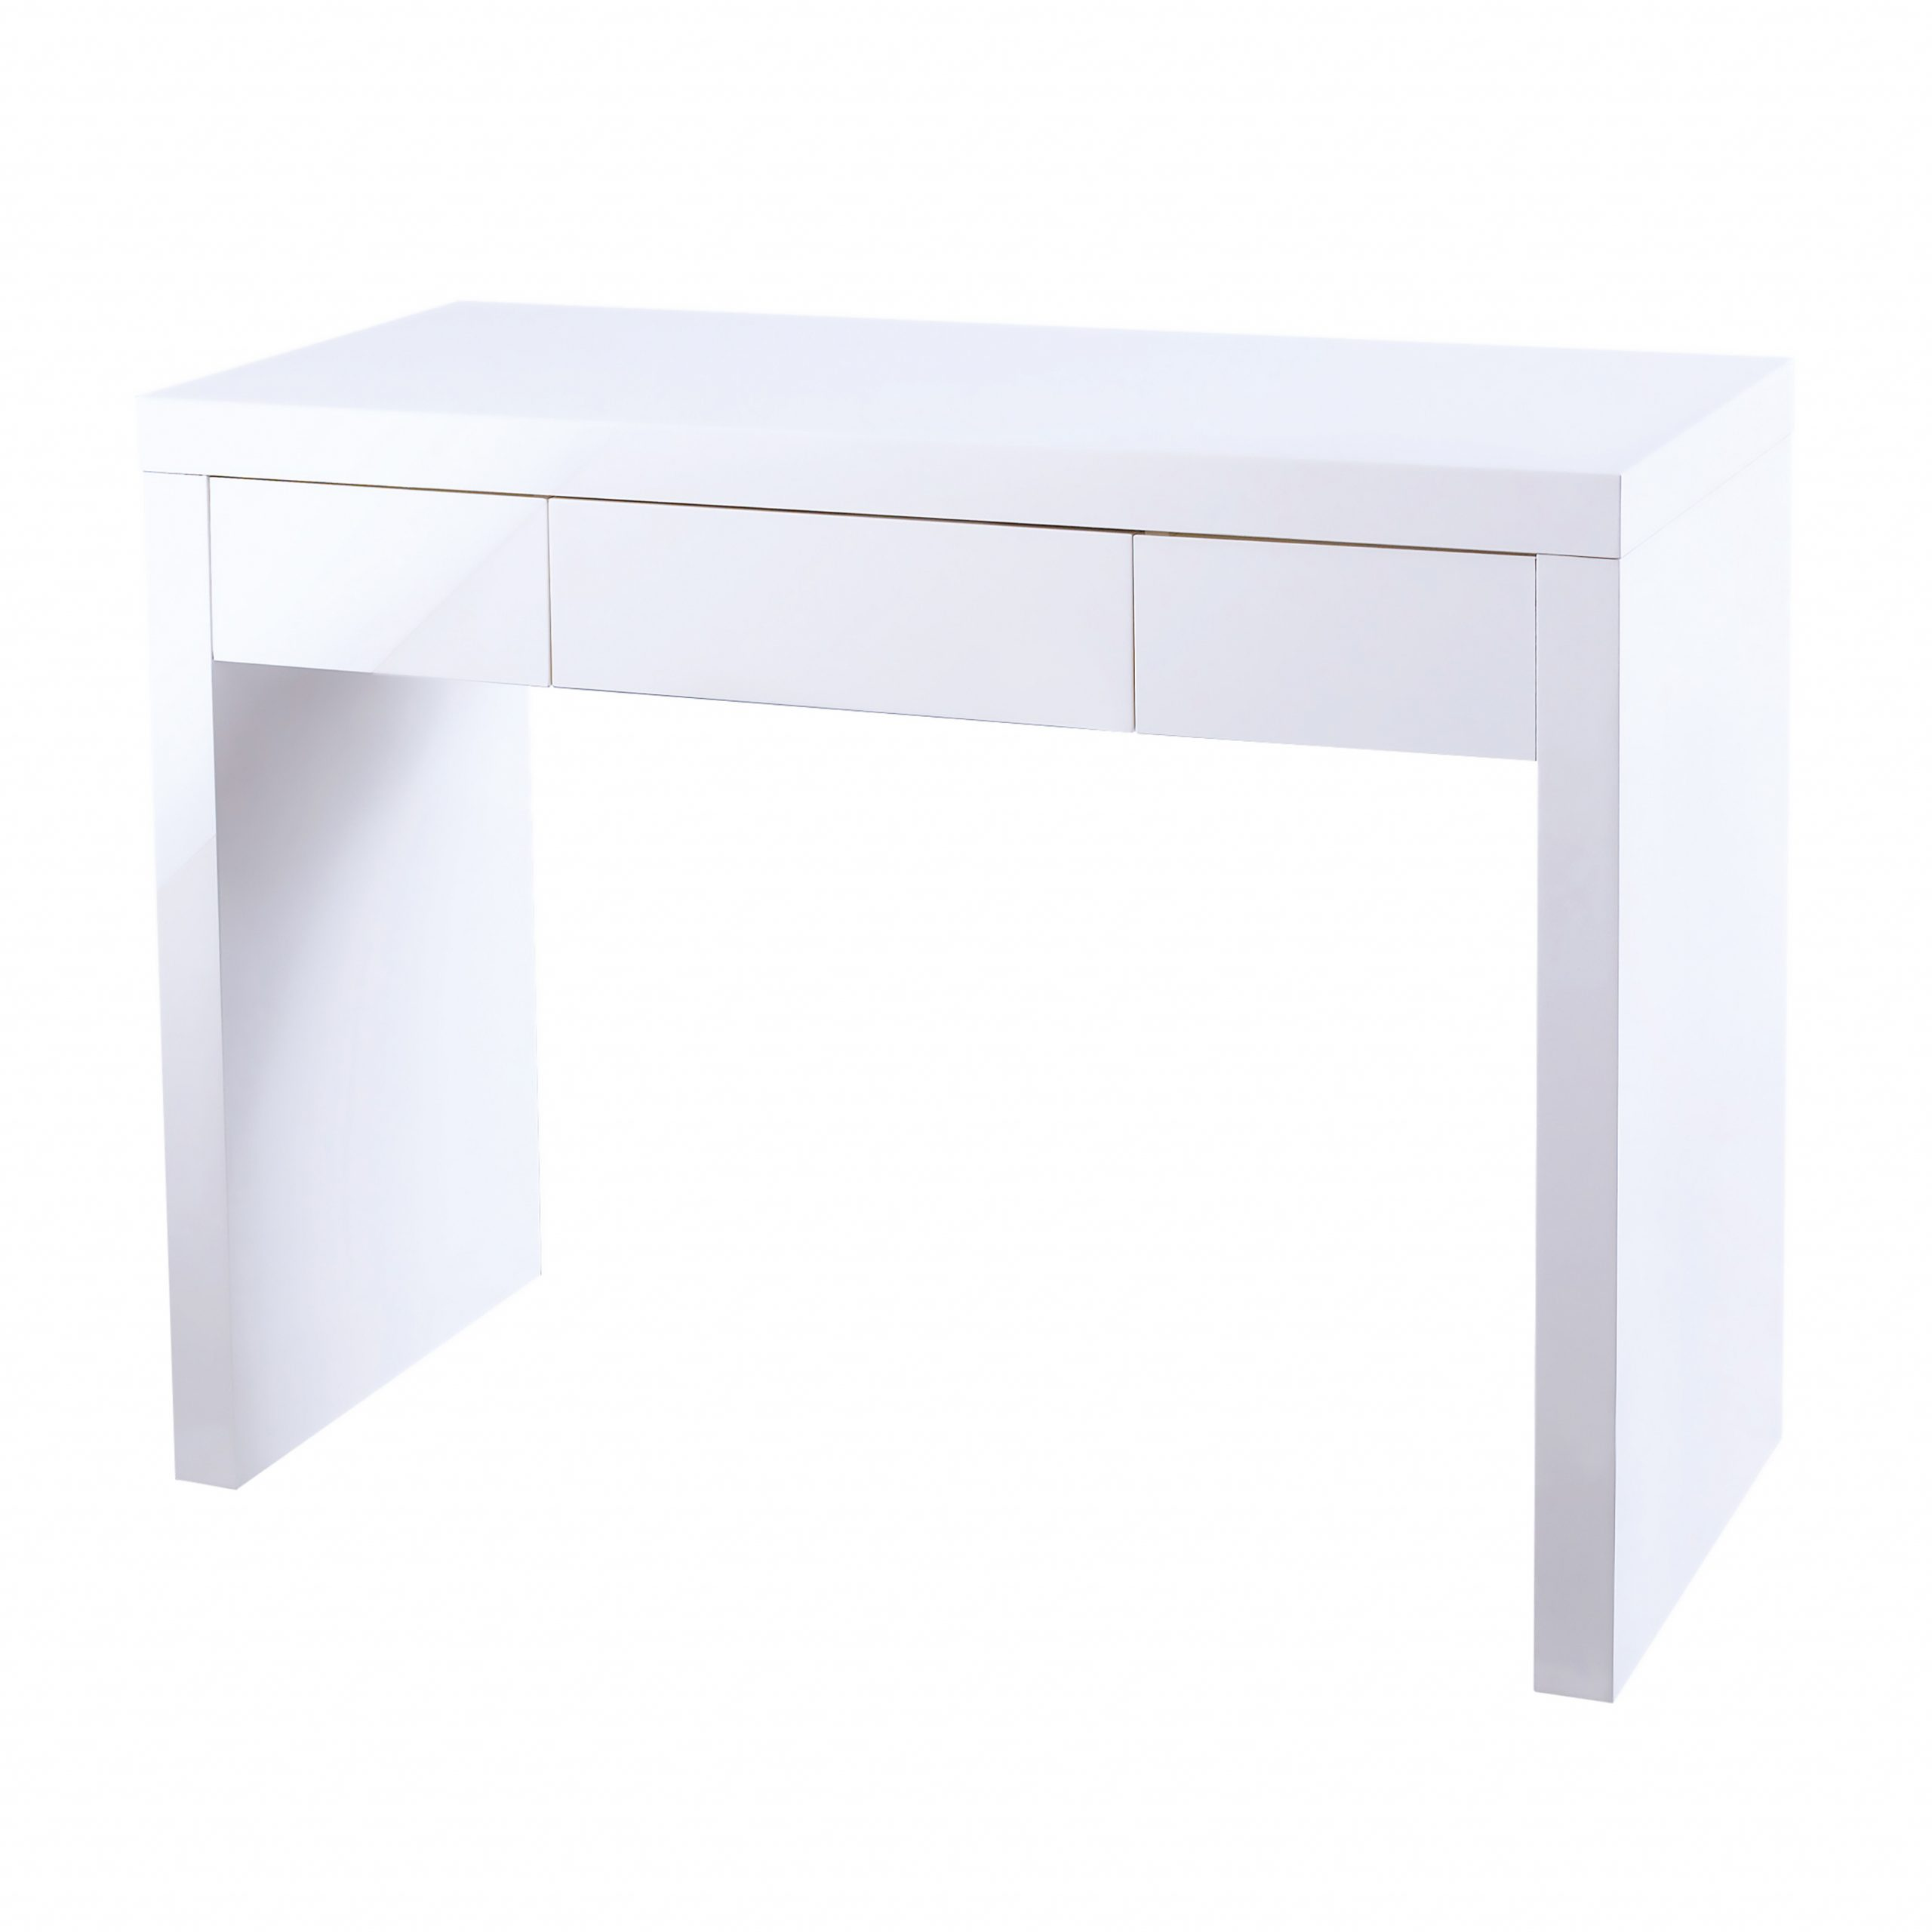 Puro Dressing Table White | Lpd Furniture Inside Puro White Tv Stands (View 1 of 20)